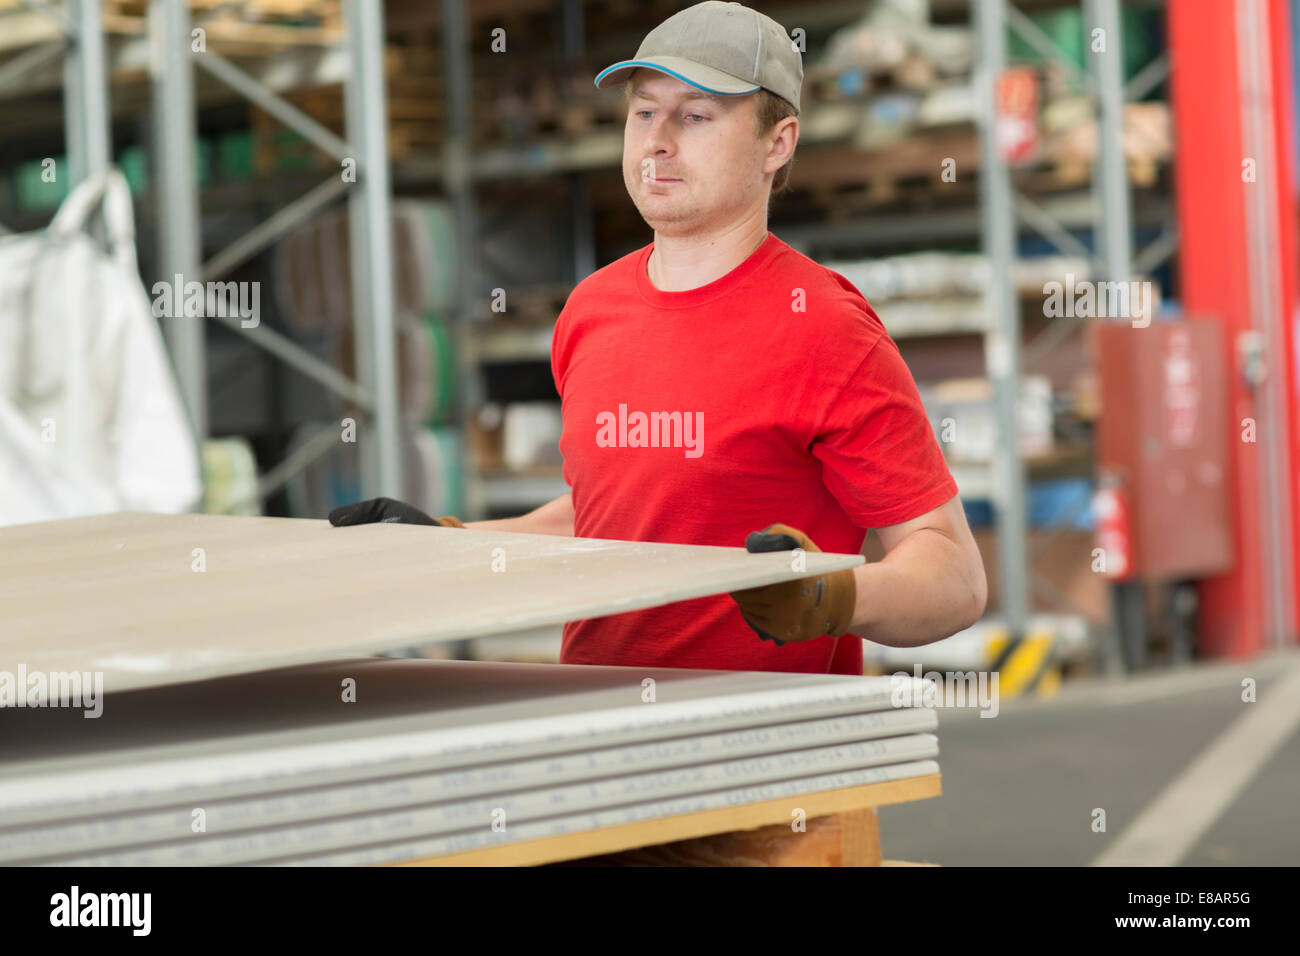 Worker lifting boards in hardware store warehouse - Stock Image